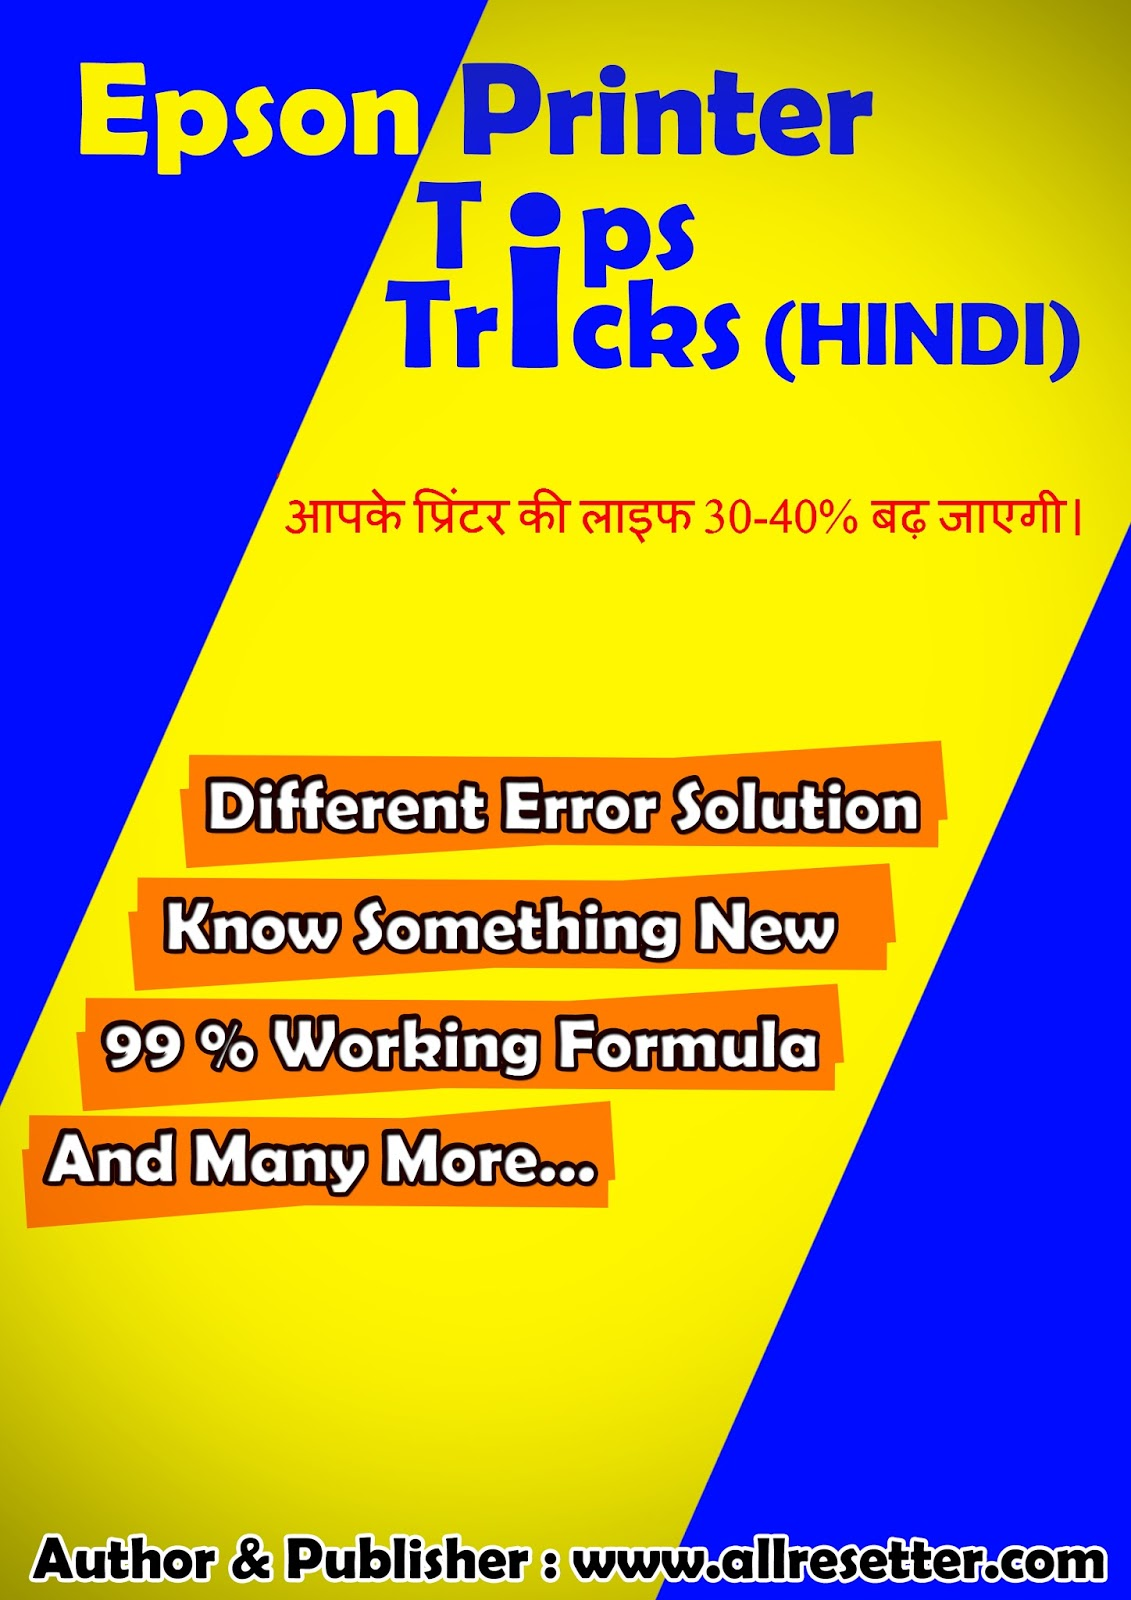 Epson Printer Tips Tricks ebook - HINDI Rs.299